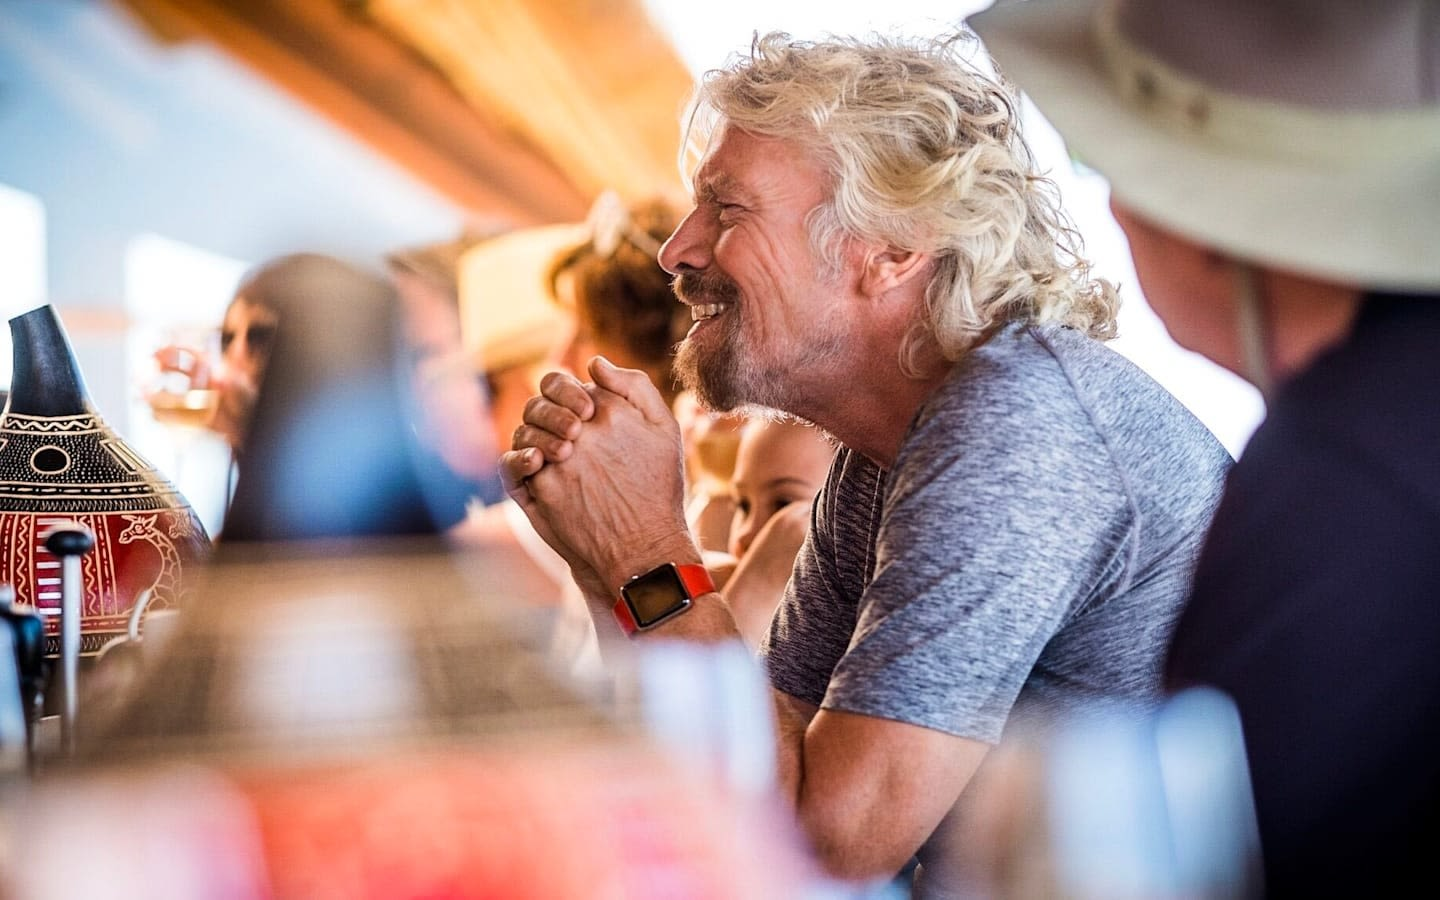 Richard Branson smiling in a meeting at Ulusaba in South Africa 2016